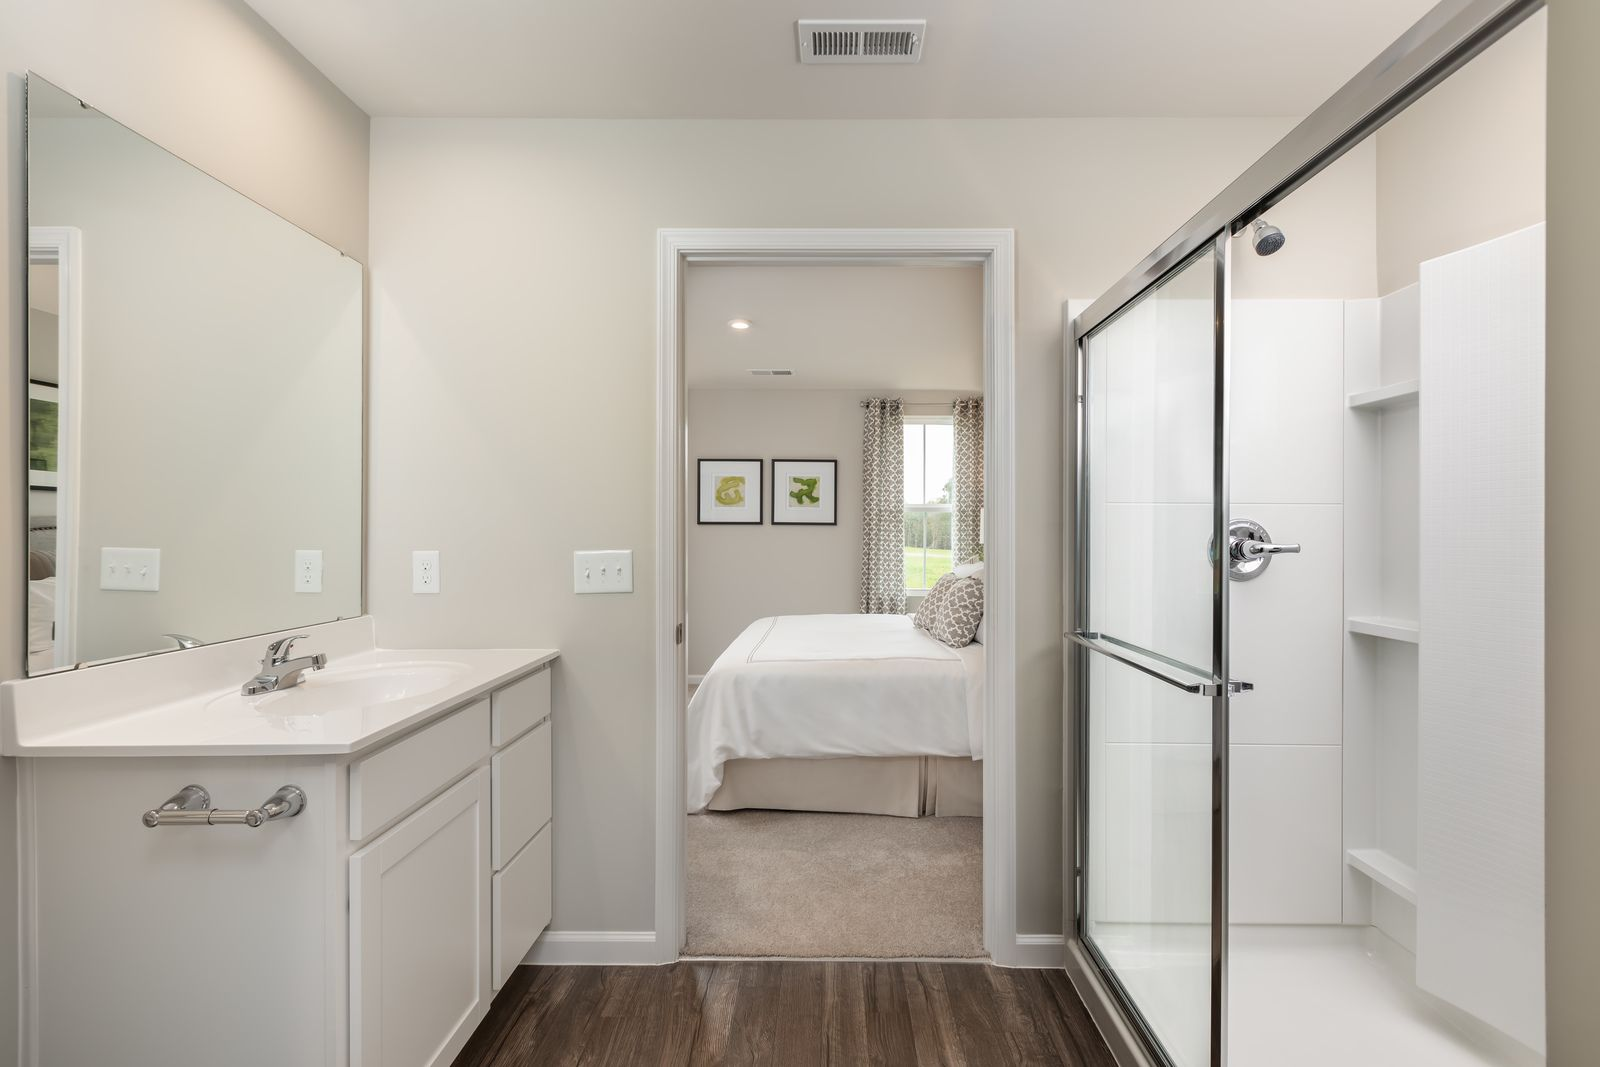 Bathroom featured in the Spruce By Ryan Homes in Akron, OH